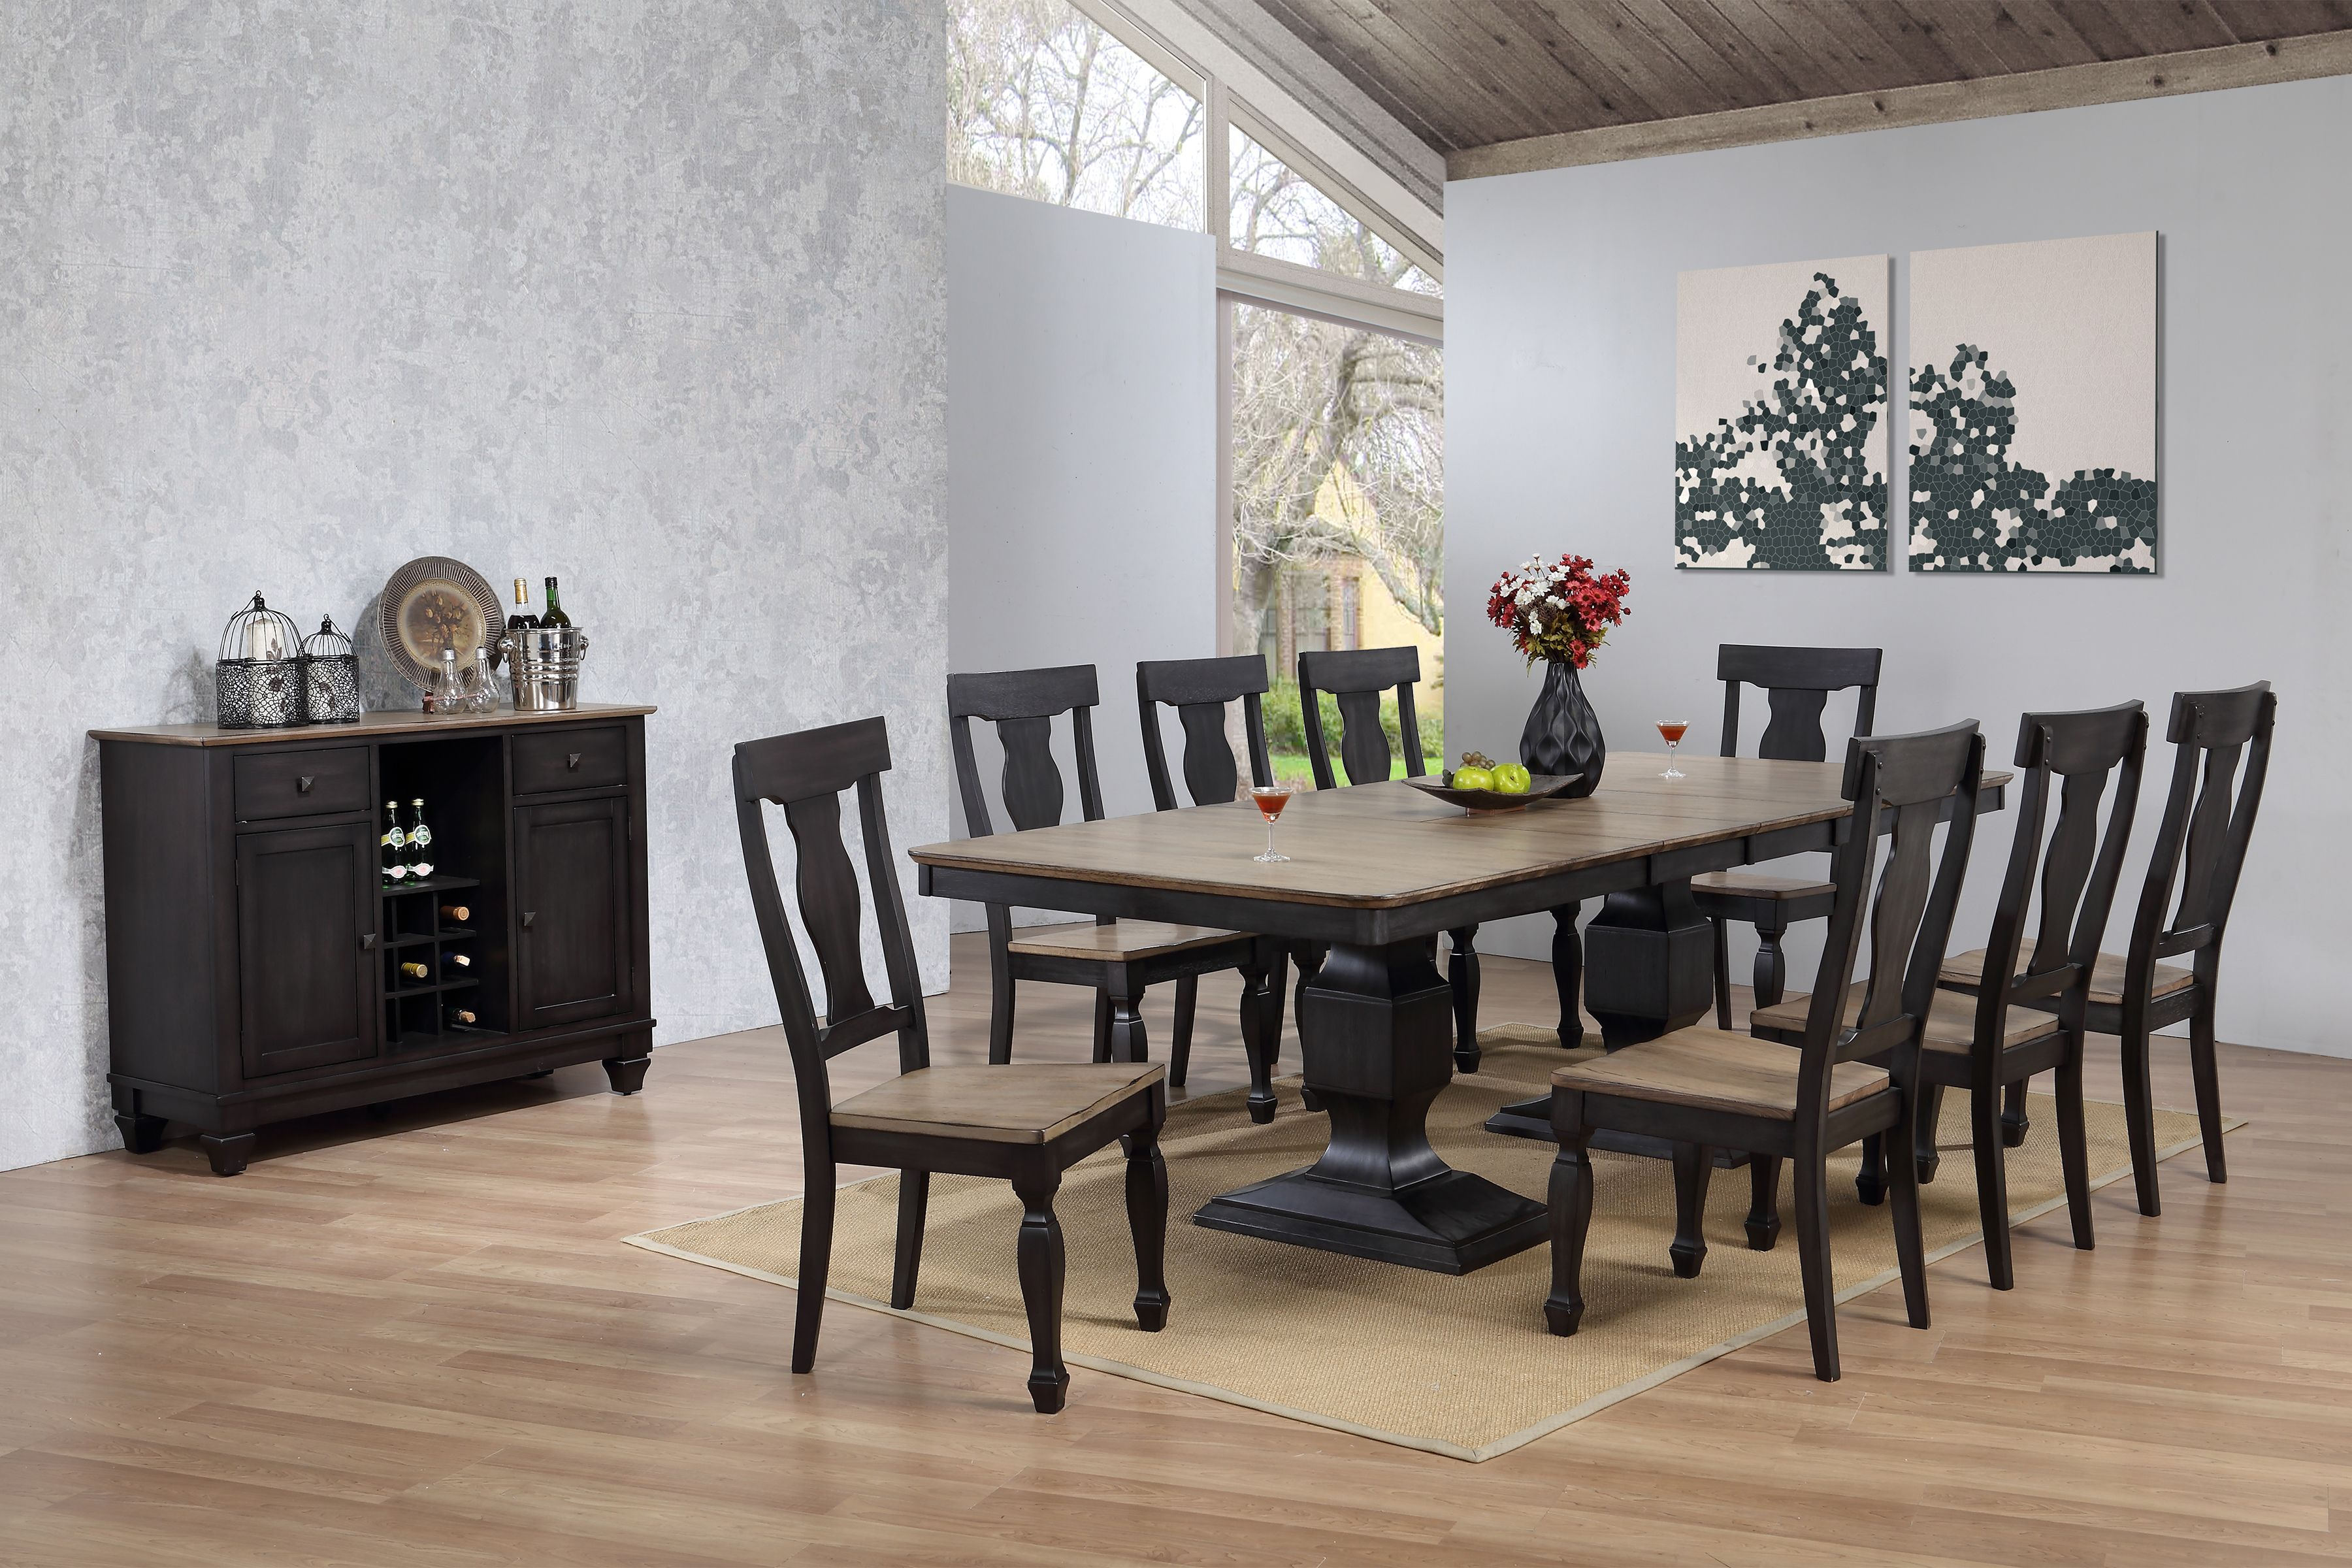 Baby Chairs At Walmart Nysha 10 Piece Dining Room Set Charcoal Oak Wood